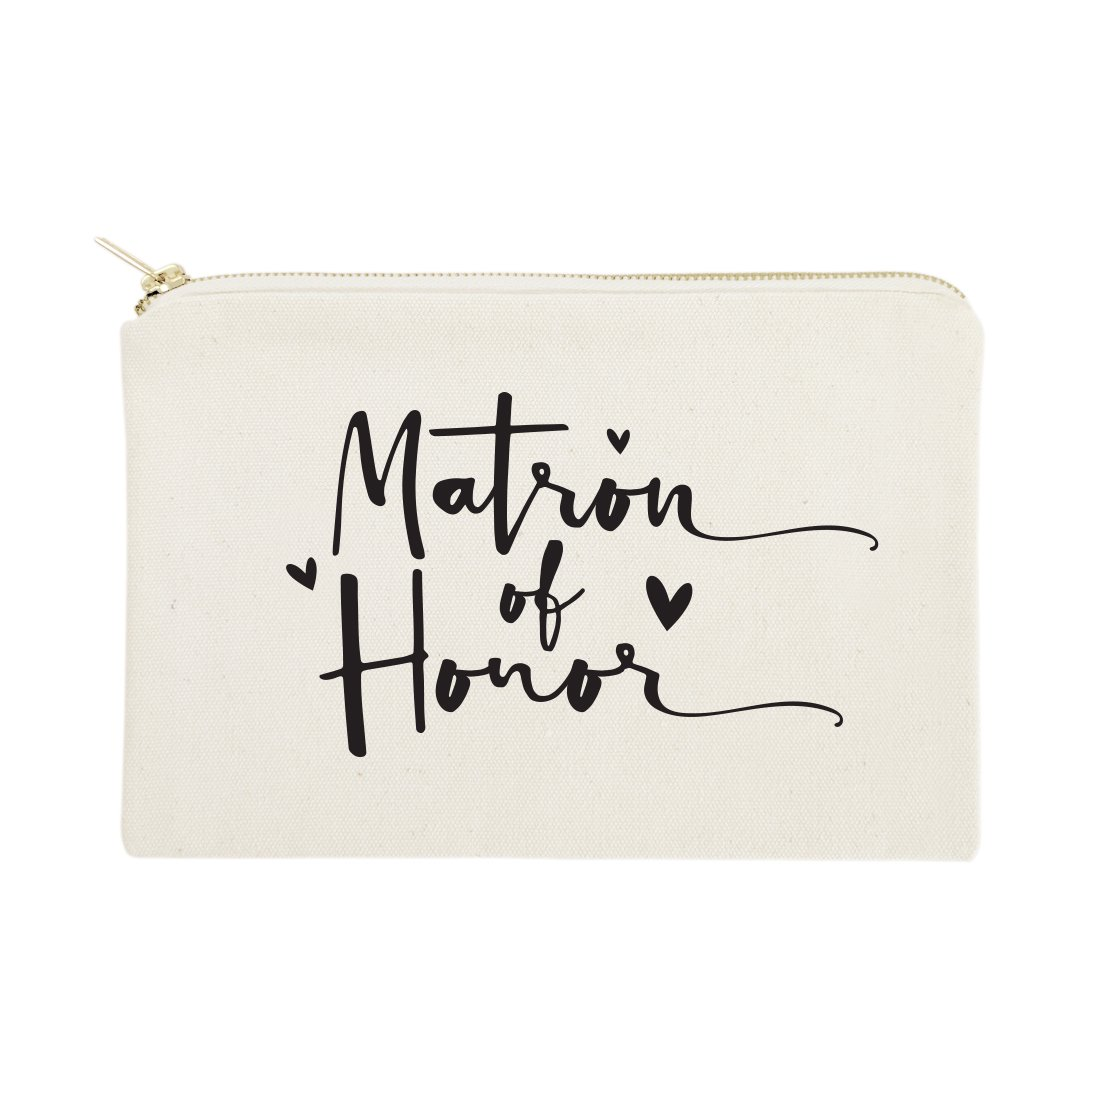 The Cotton & Canvas Co. Matron of Honor Wedding Cosmetic Bag, Bridal Party Gift and Travel Make Up Pouch